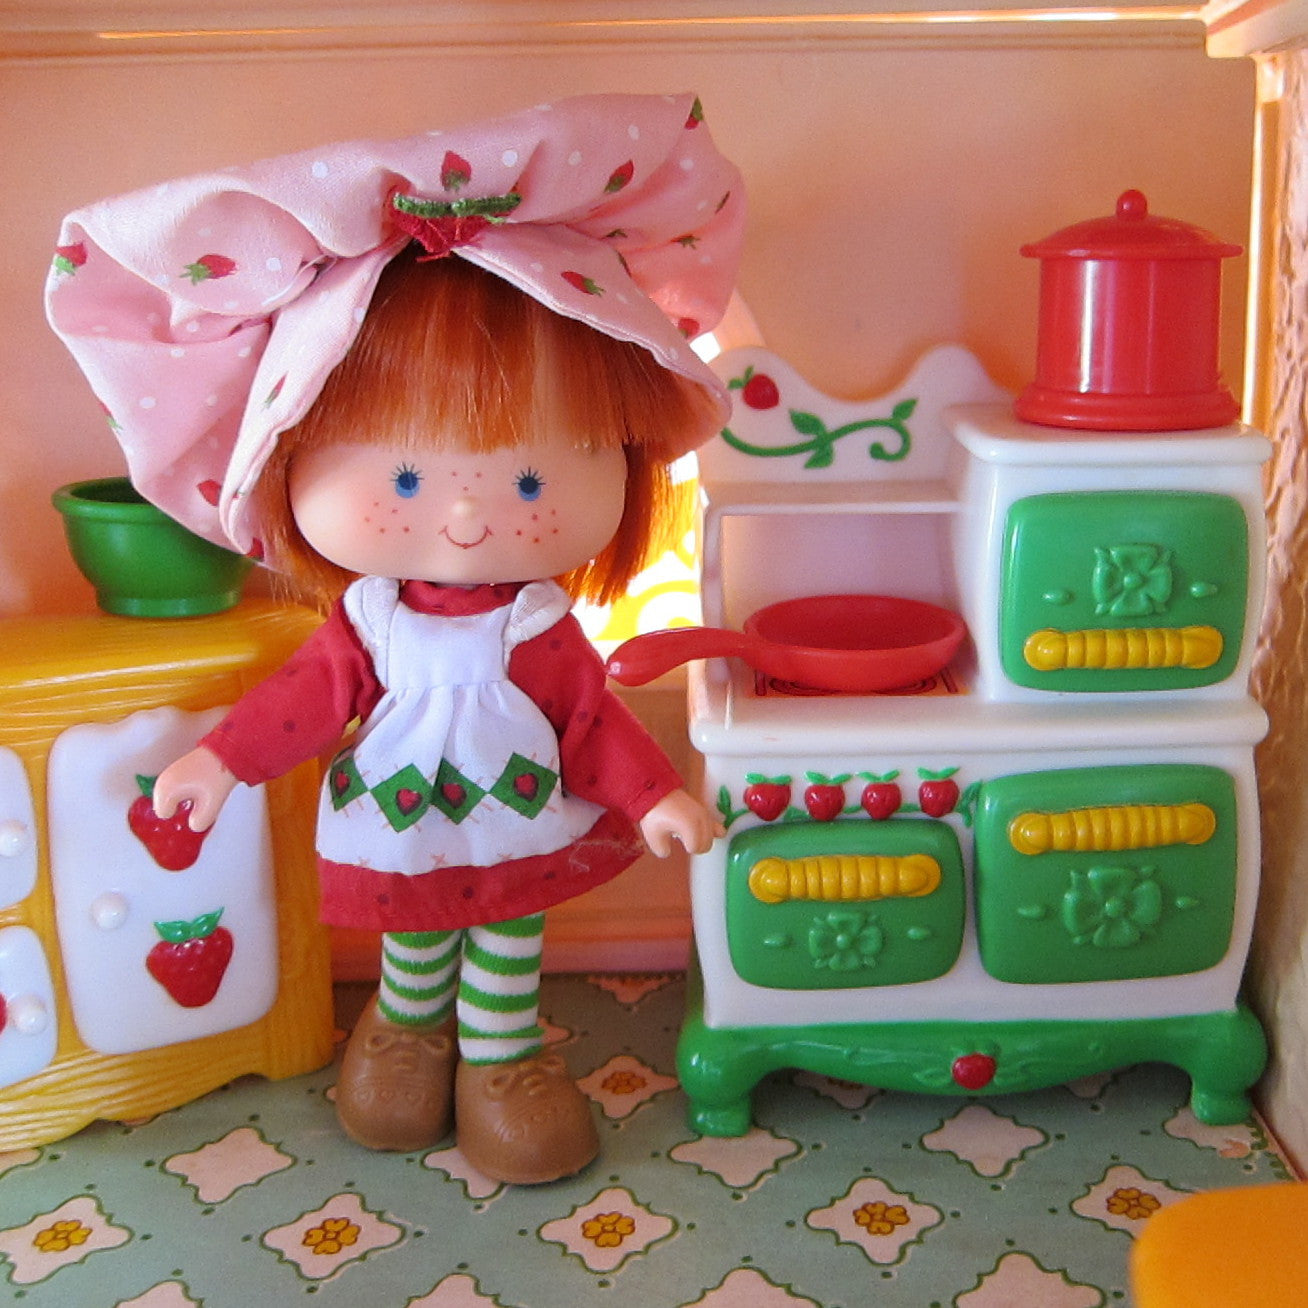 Strawberry Shortcake Kitchen Set: Canister With Lid For Strawberry Shortcake Berry Happy